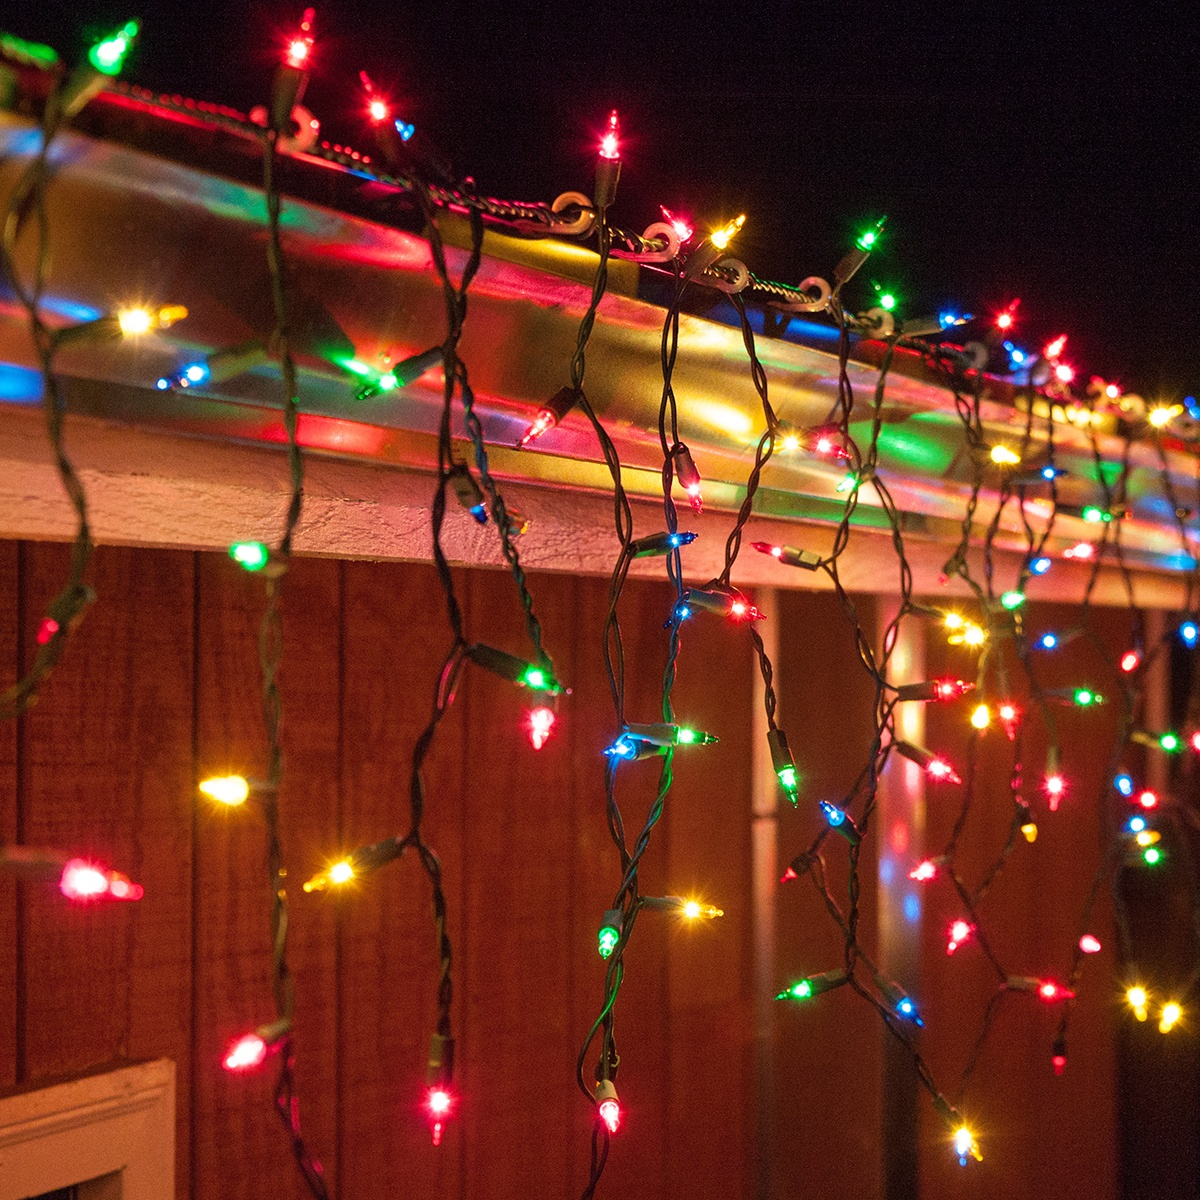 Elegant 150 Multi (Red, Green, Pink, Blue, Yellow) Icicle Lights